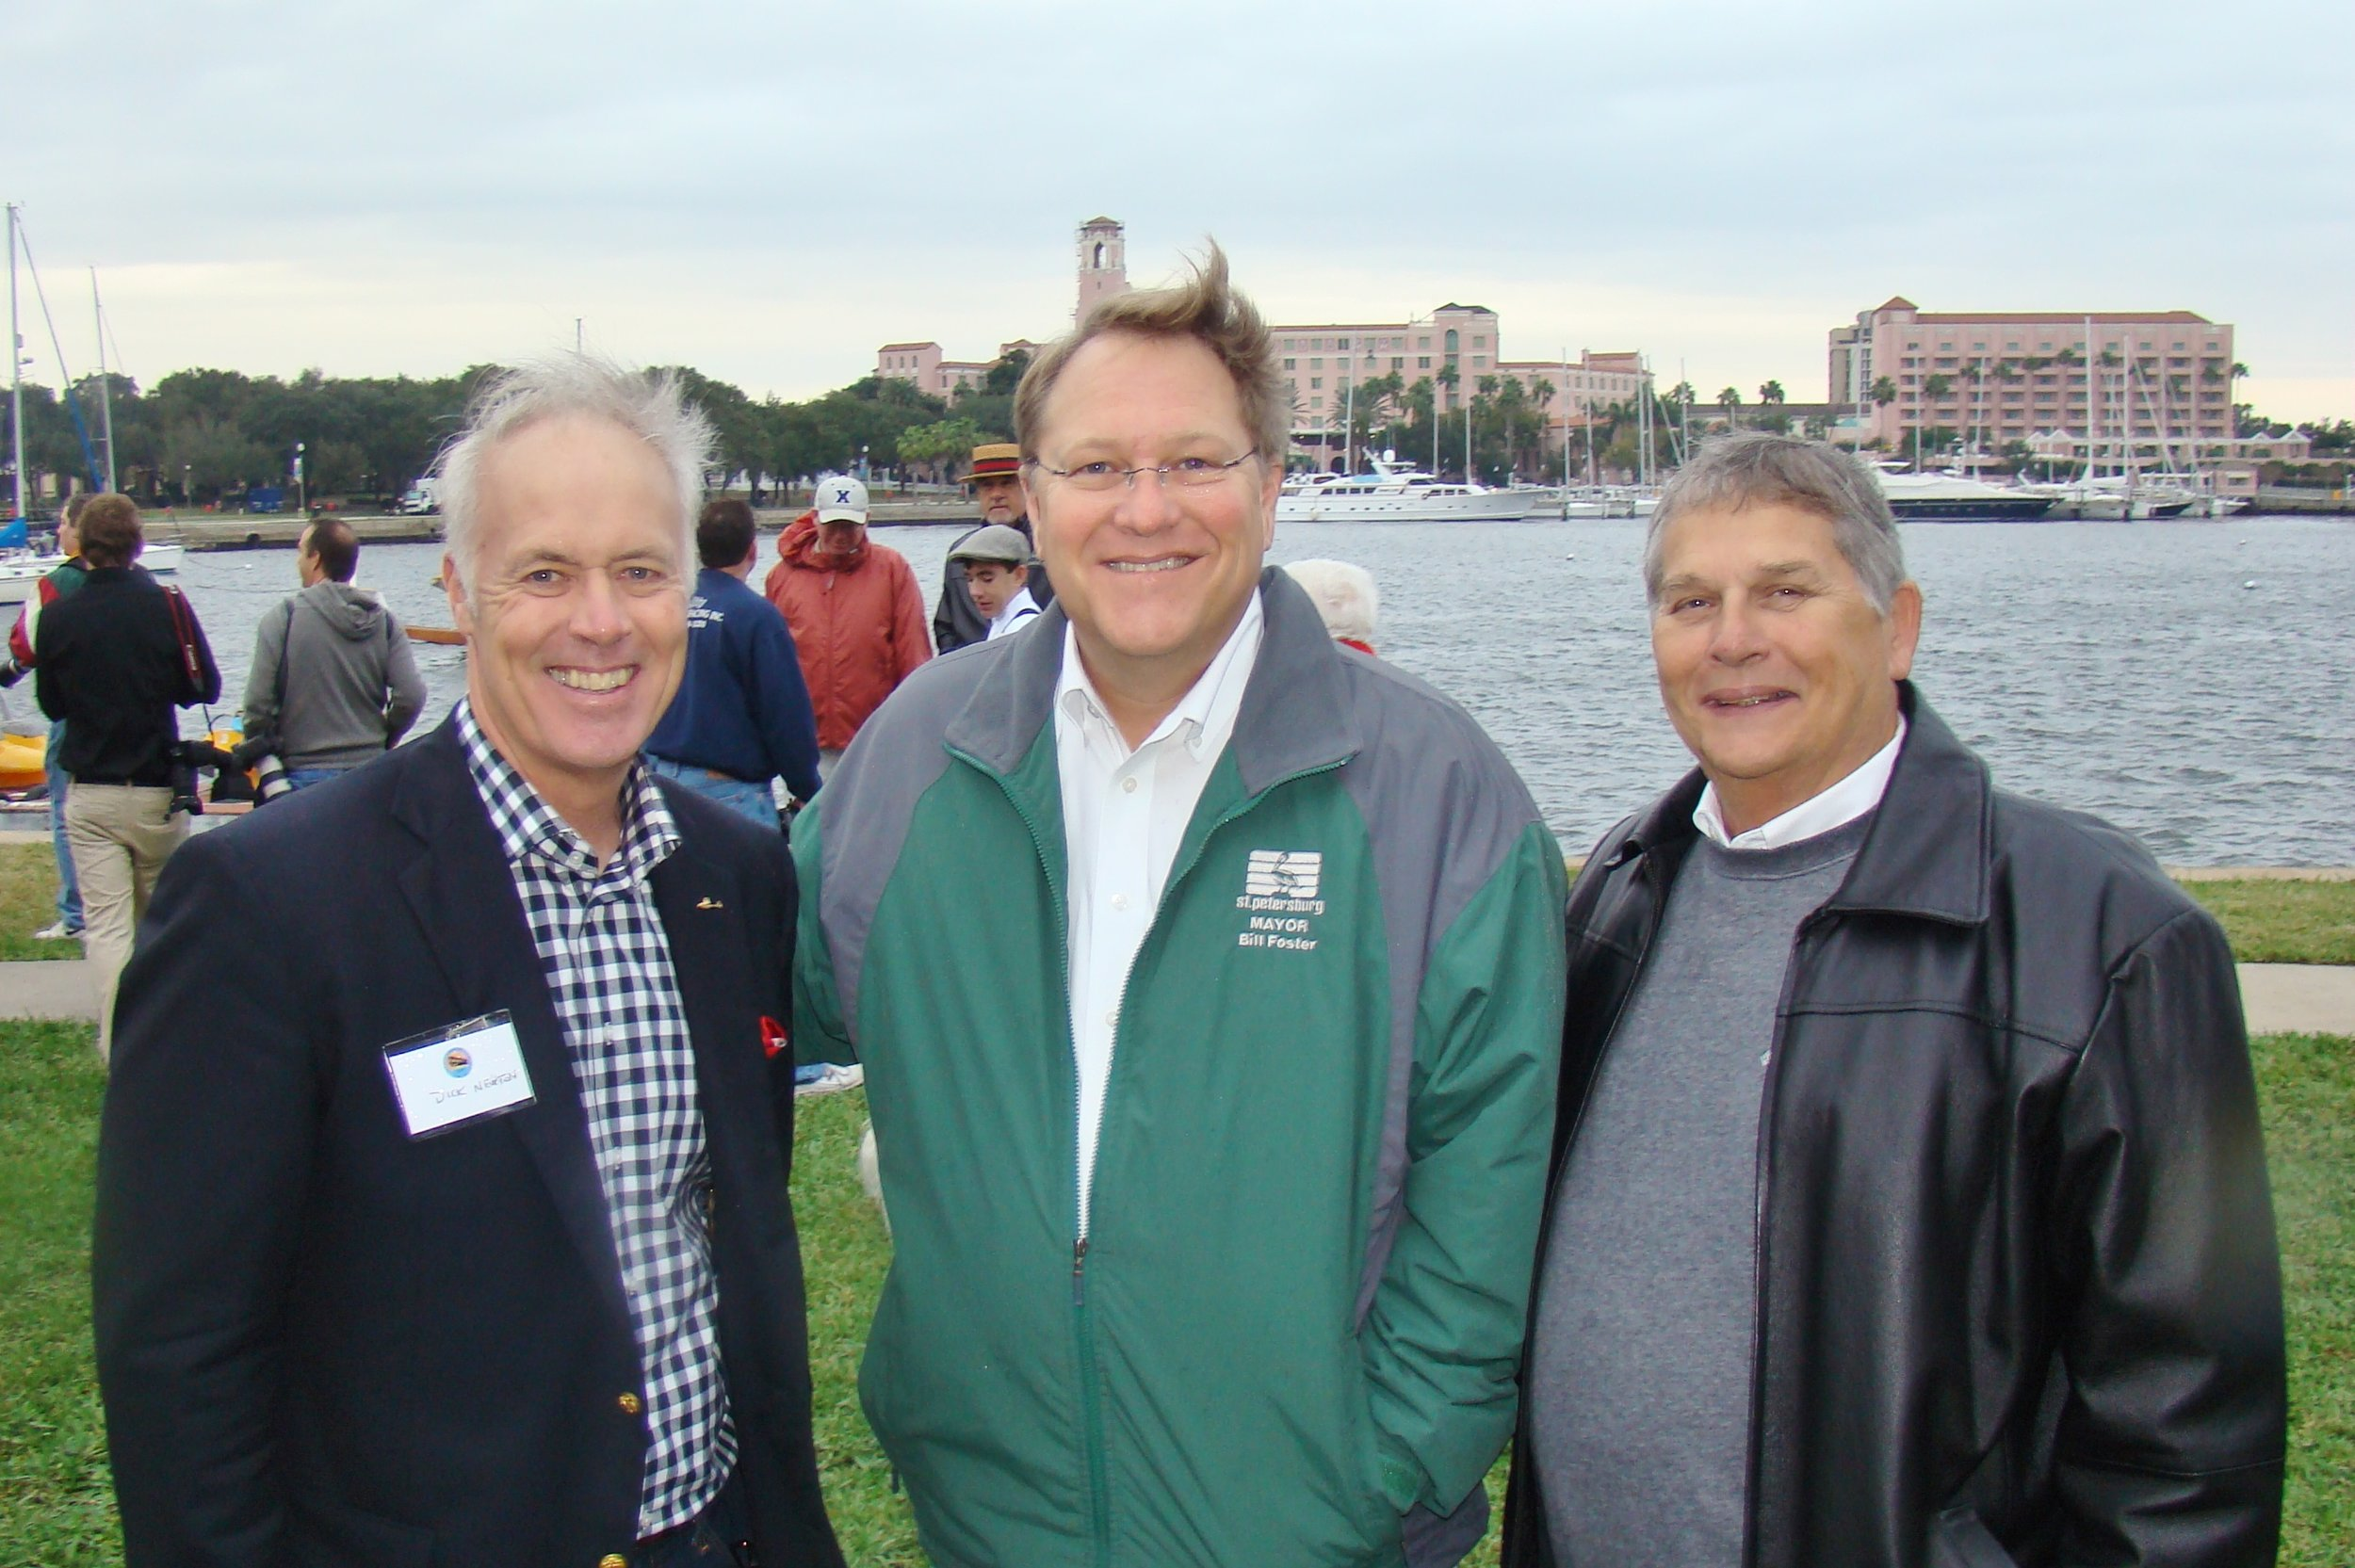 Dick Newton, III, Mayor Bill Foster, & Councilman Bill Dudley - 2, 1 Jan '14.JPG